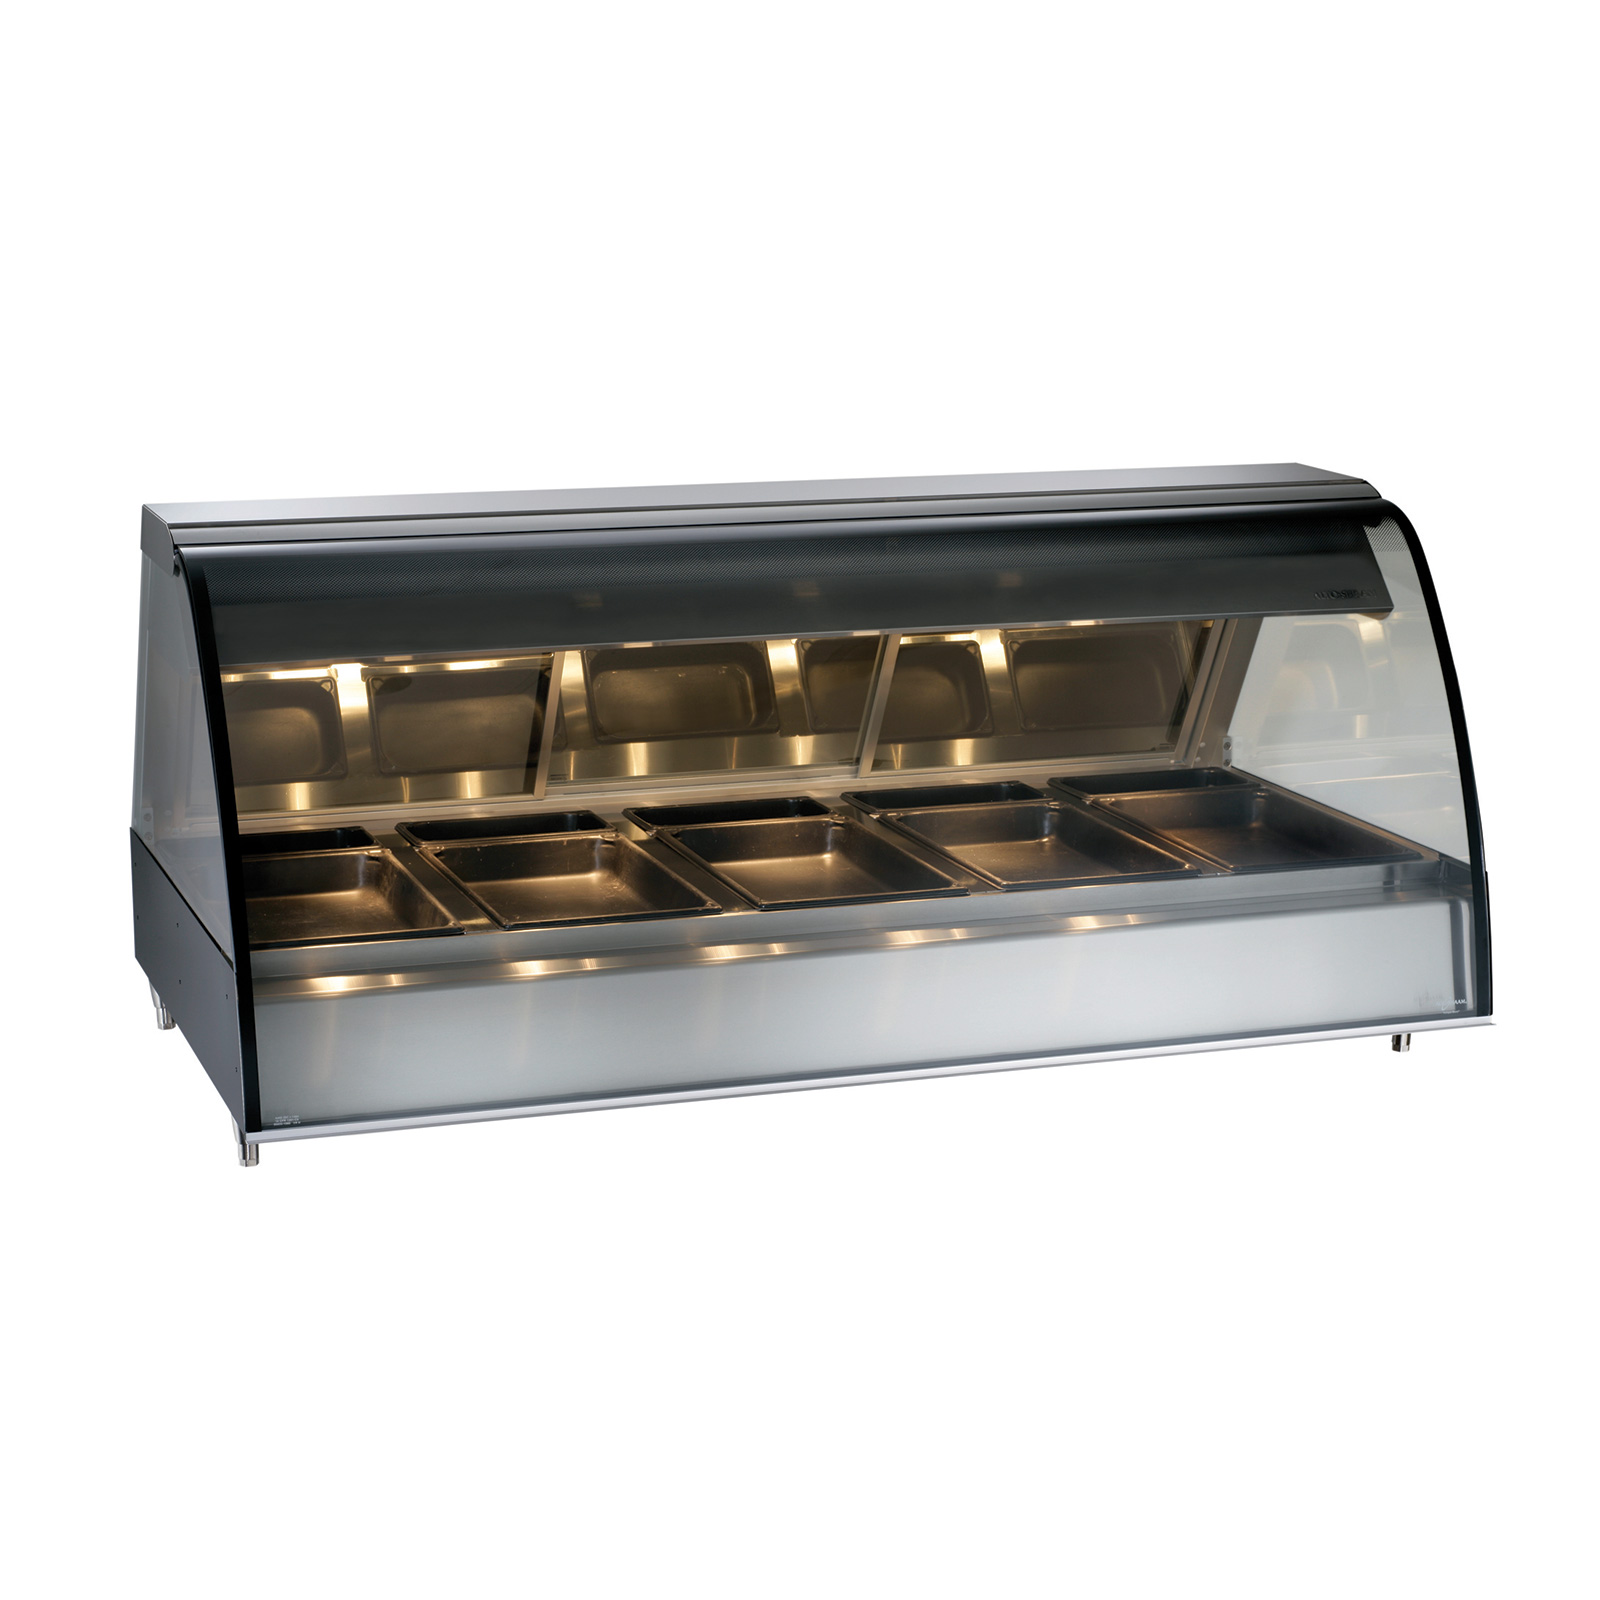 Alto-Shaam TY2-72/PR-BLK display case, heated deli, countertop